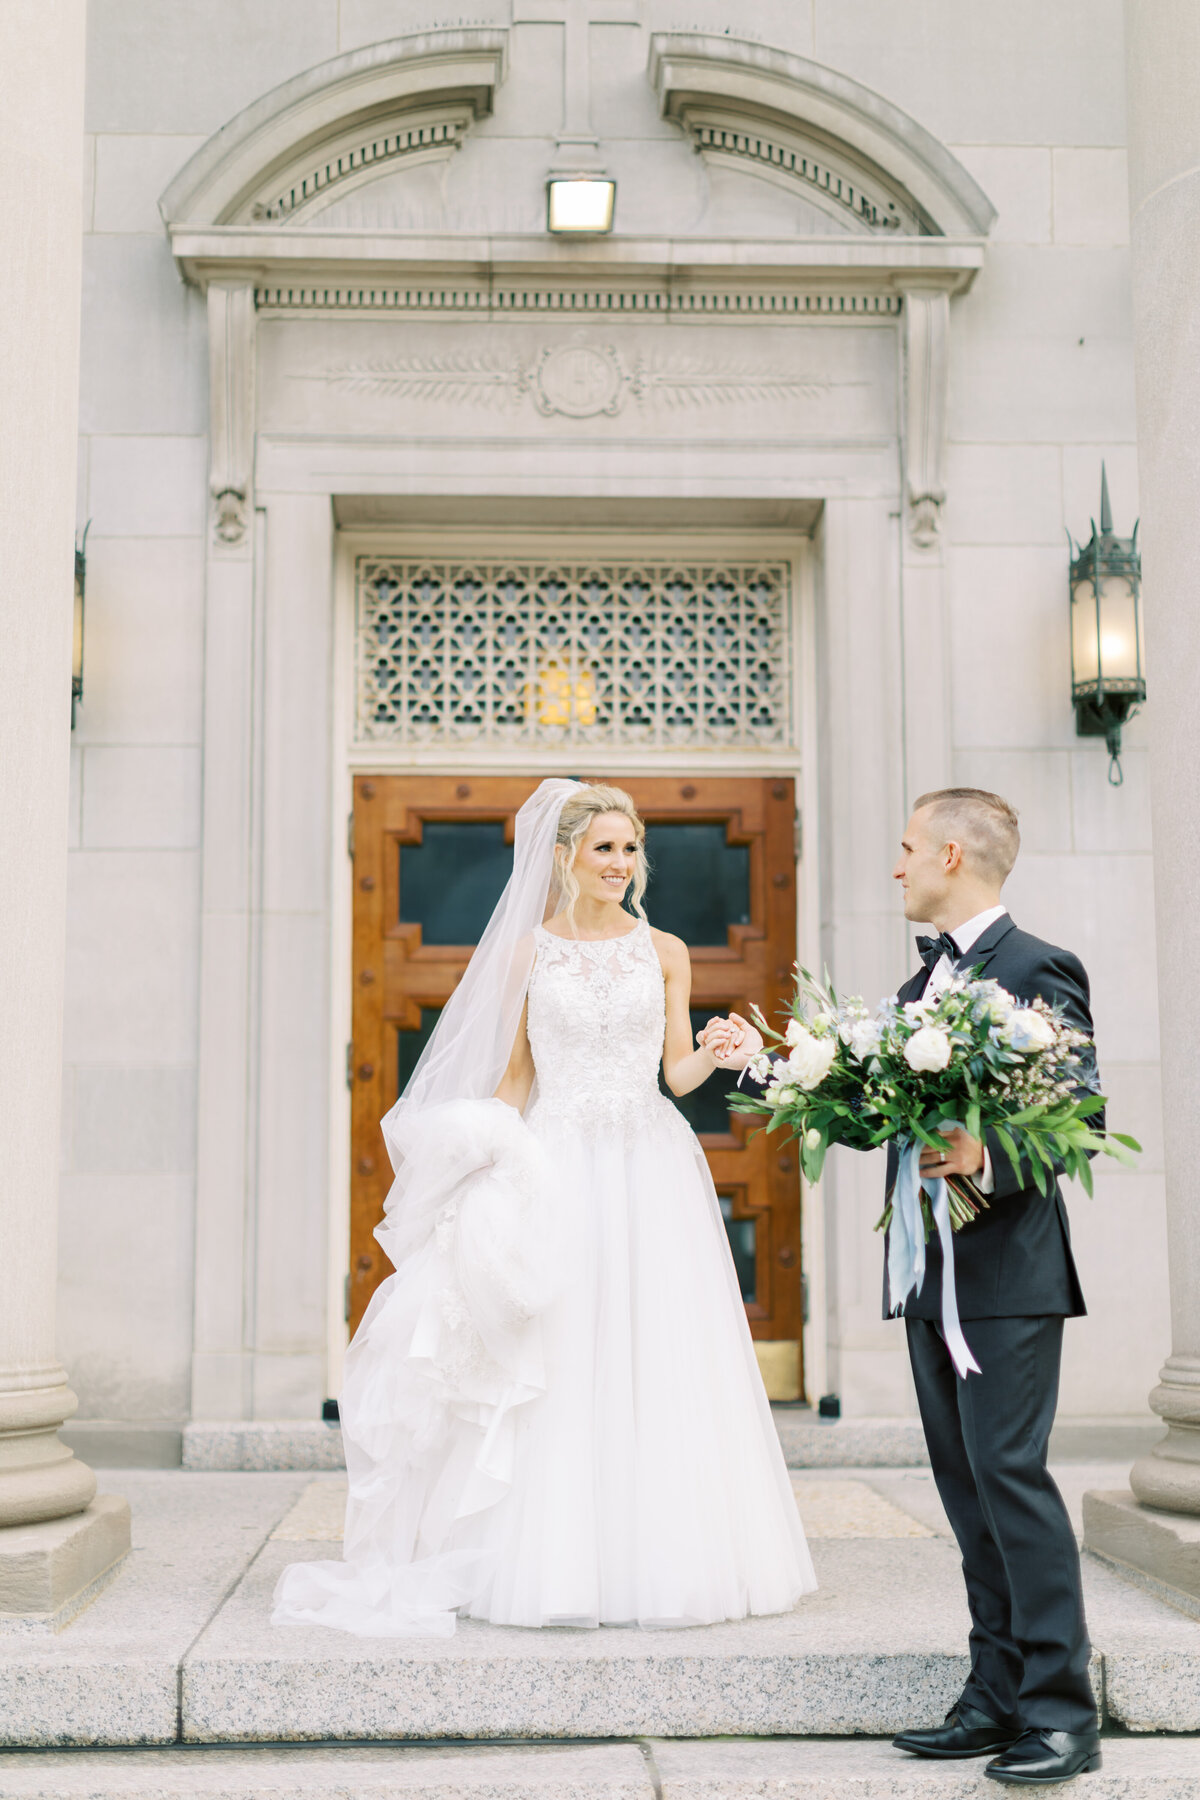 TiffaneyChildsPhotography-ChicagoWeddingPhotographer-Caitlin+Devin-MedinahCountryClubWedding-BridalPortraits-9